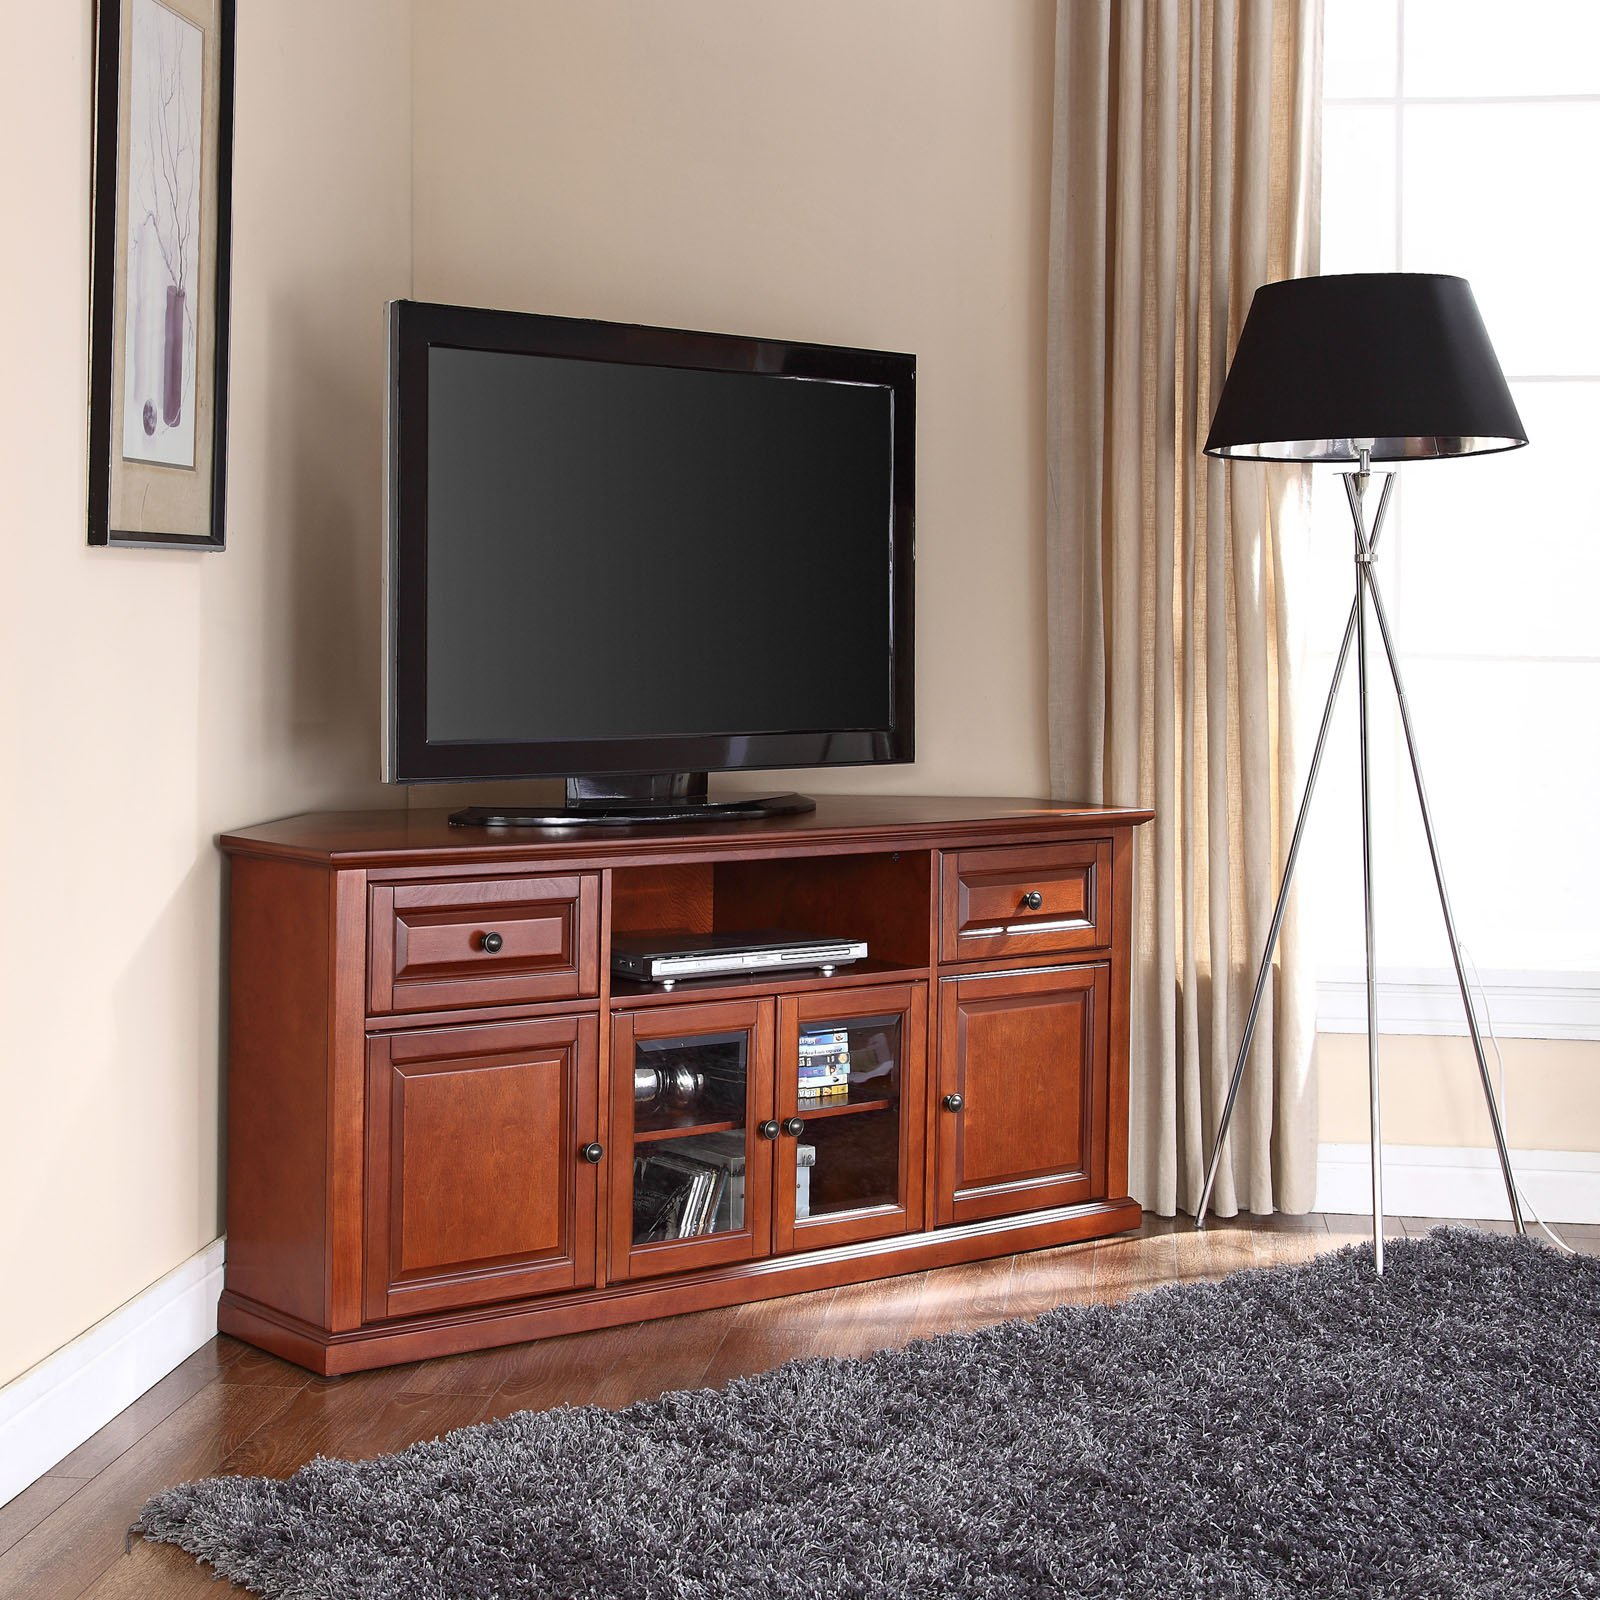 """Mahogany Tv Stands Within Well Known Crosley Furniture Corner Tv Stand For Tvs Up To 60"""" – Walmart (View 13 of 20)"""